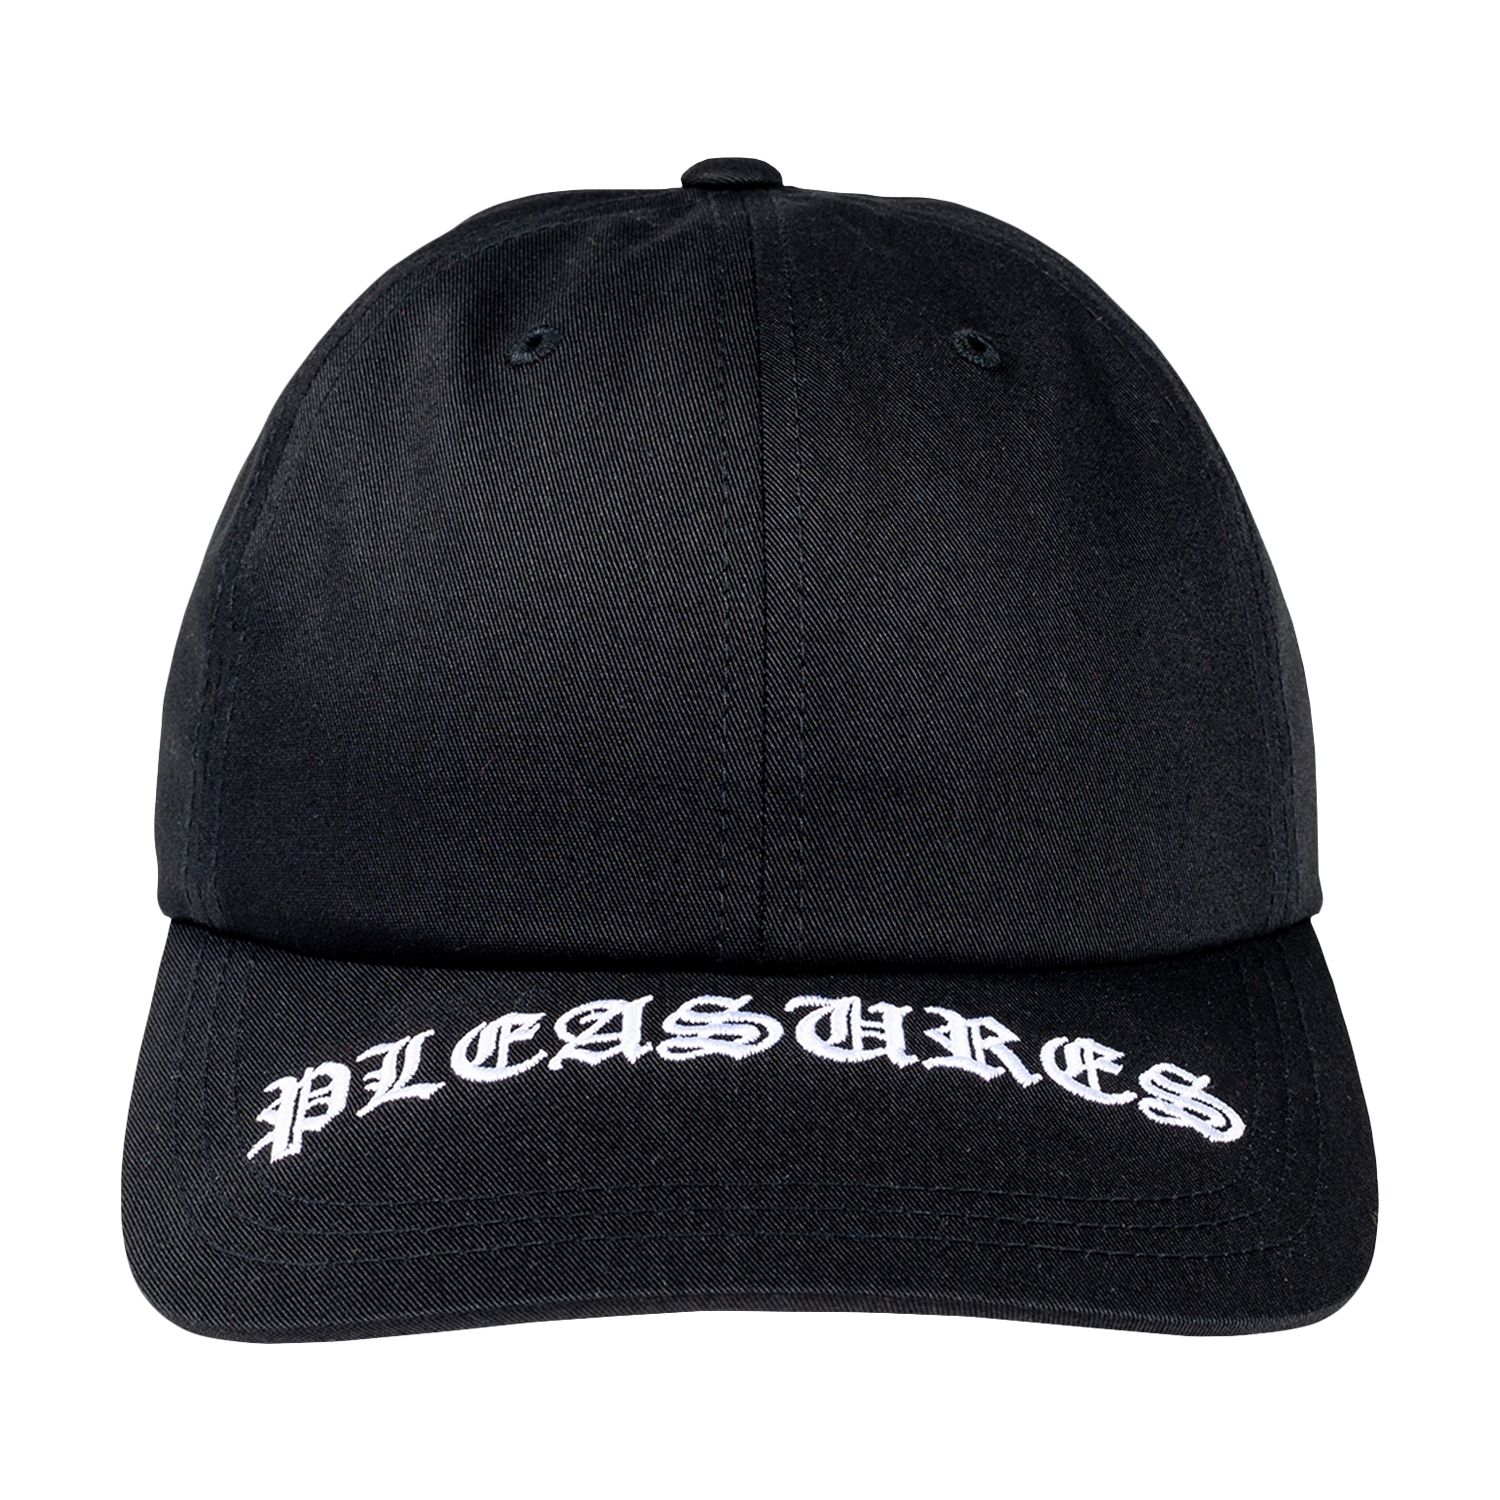 【PLEASURES/プレジャーズ】HEAVY METAL LOW PROFILE EMBROIDERED SNAPBACK スナップバックキャップ / BLACK